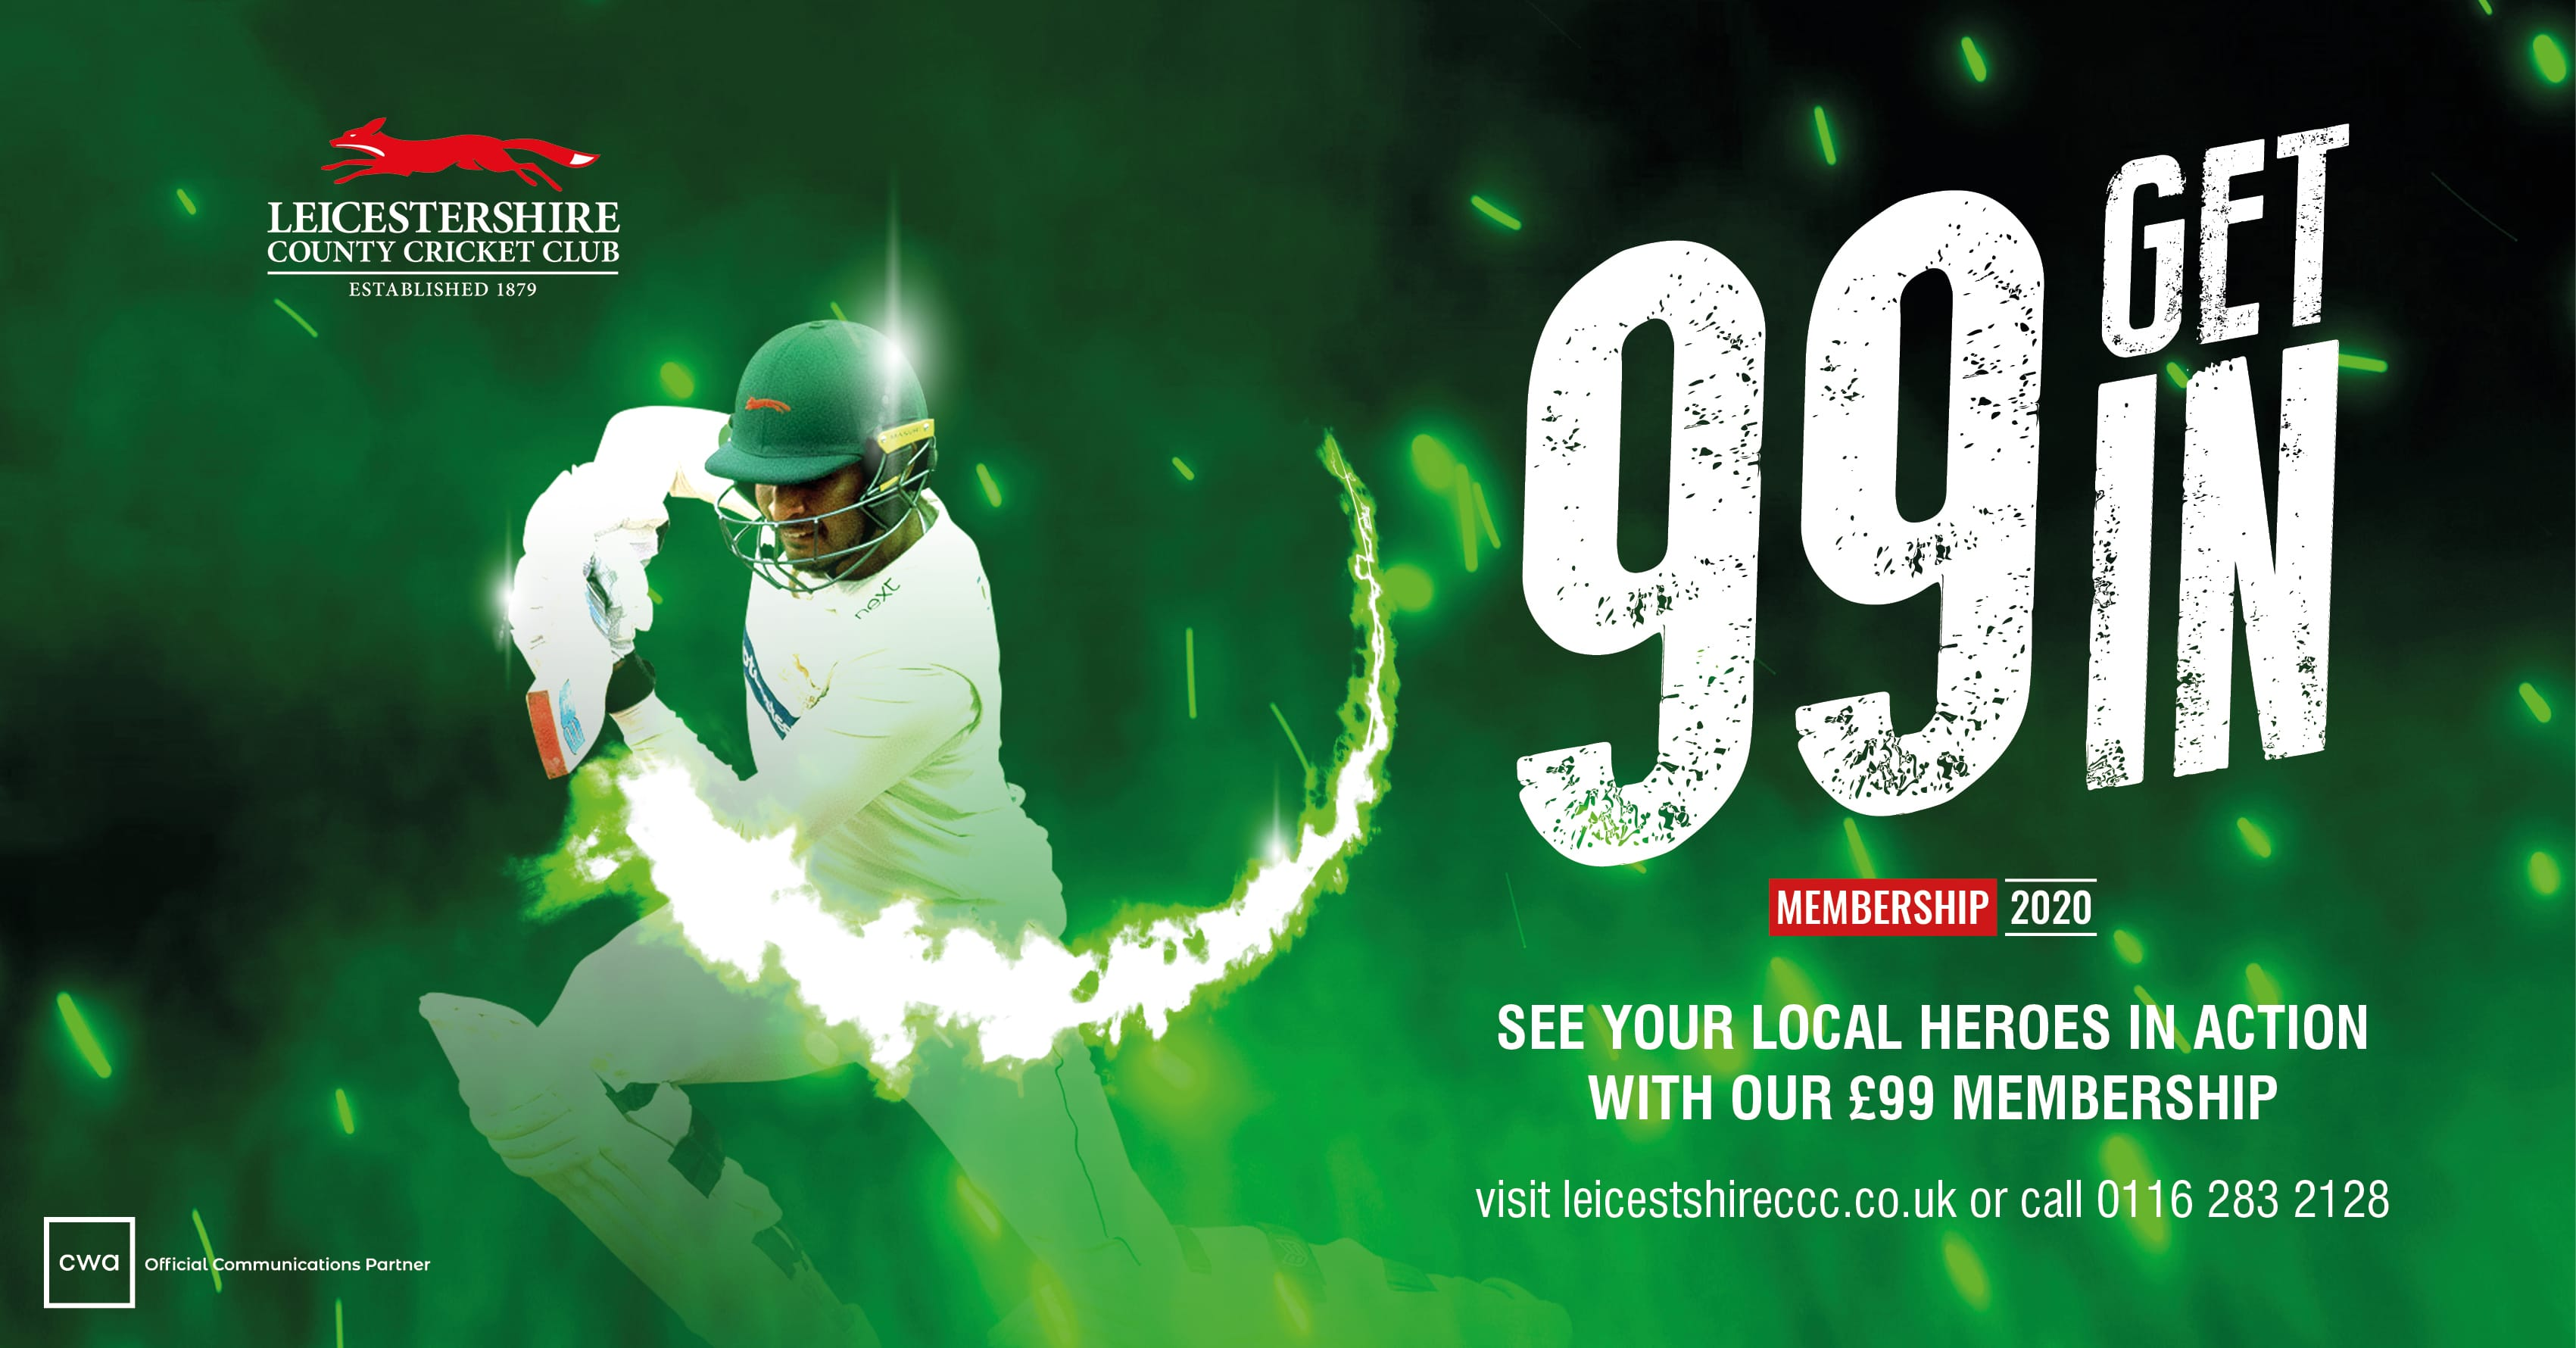 cwa lccc leicestershire county cricket club design social communications green